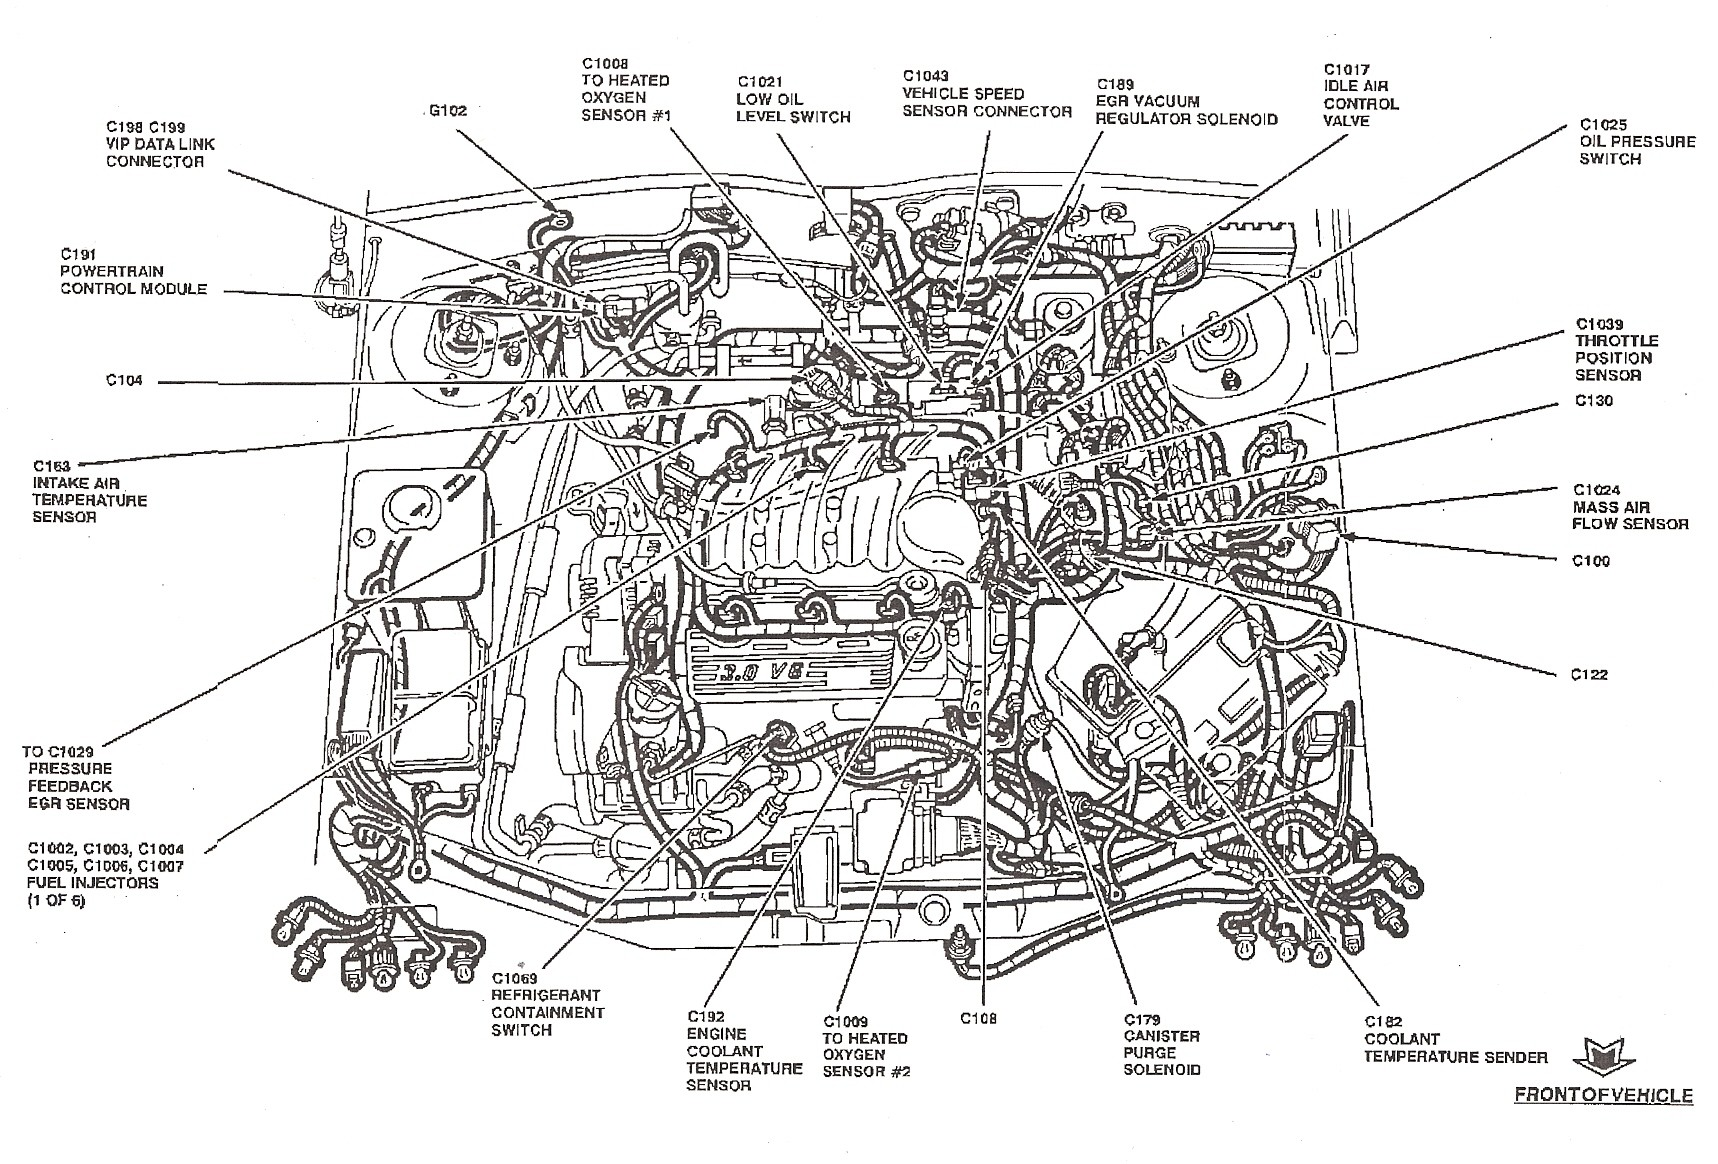 2003 ford focus zts engine diagram  u2022 wiring diagram for free